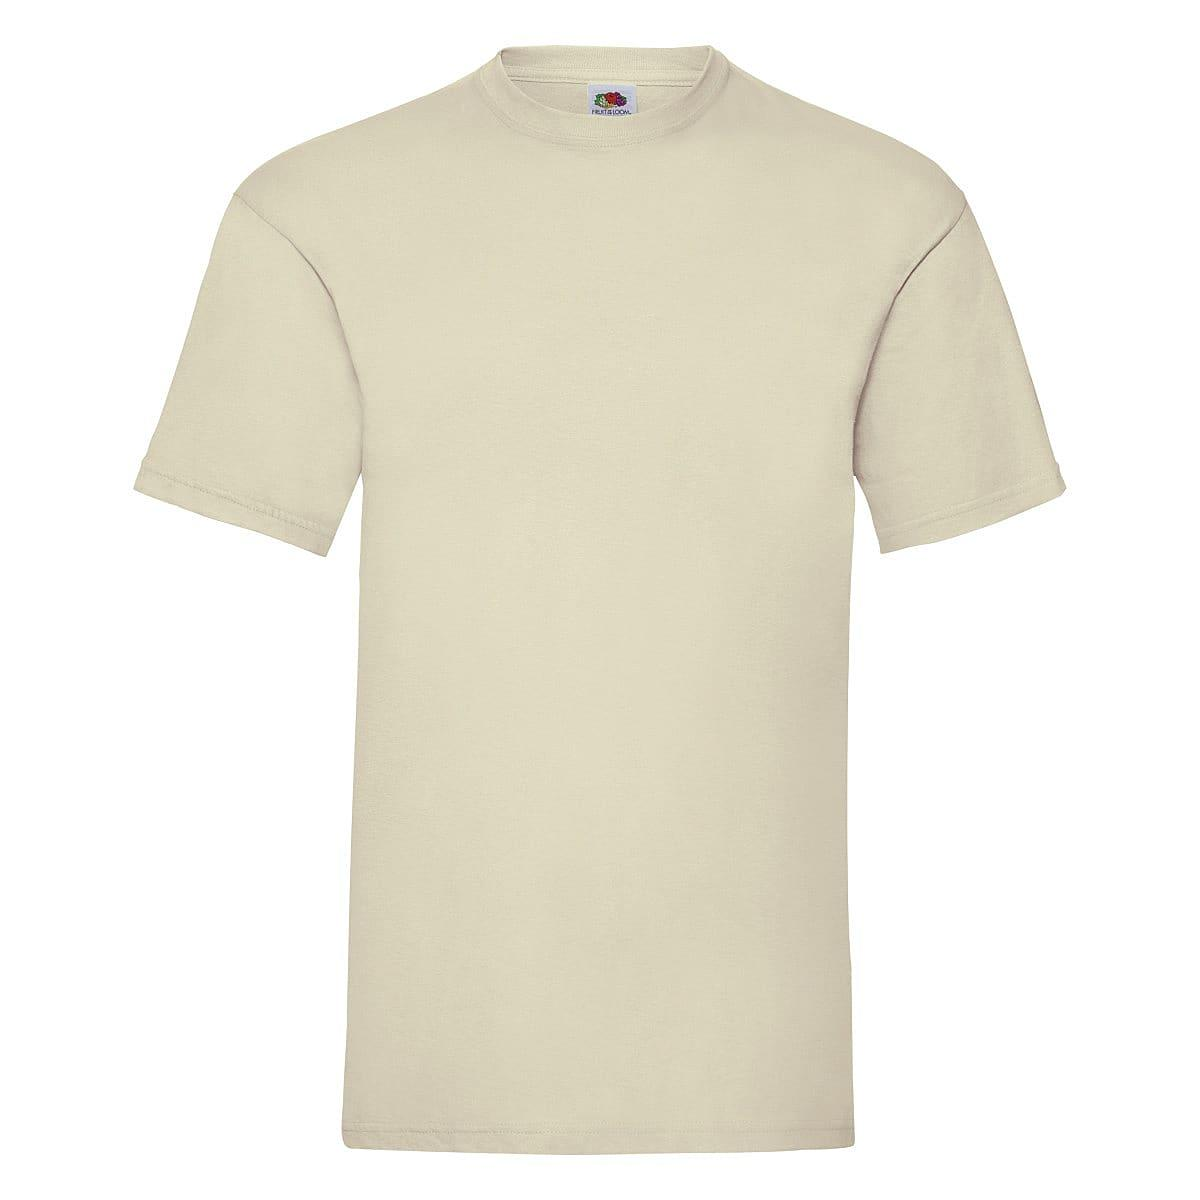 Fruit Of The Loom Valueweight T-Shirt in Natural (Product Code: 61036)